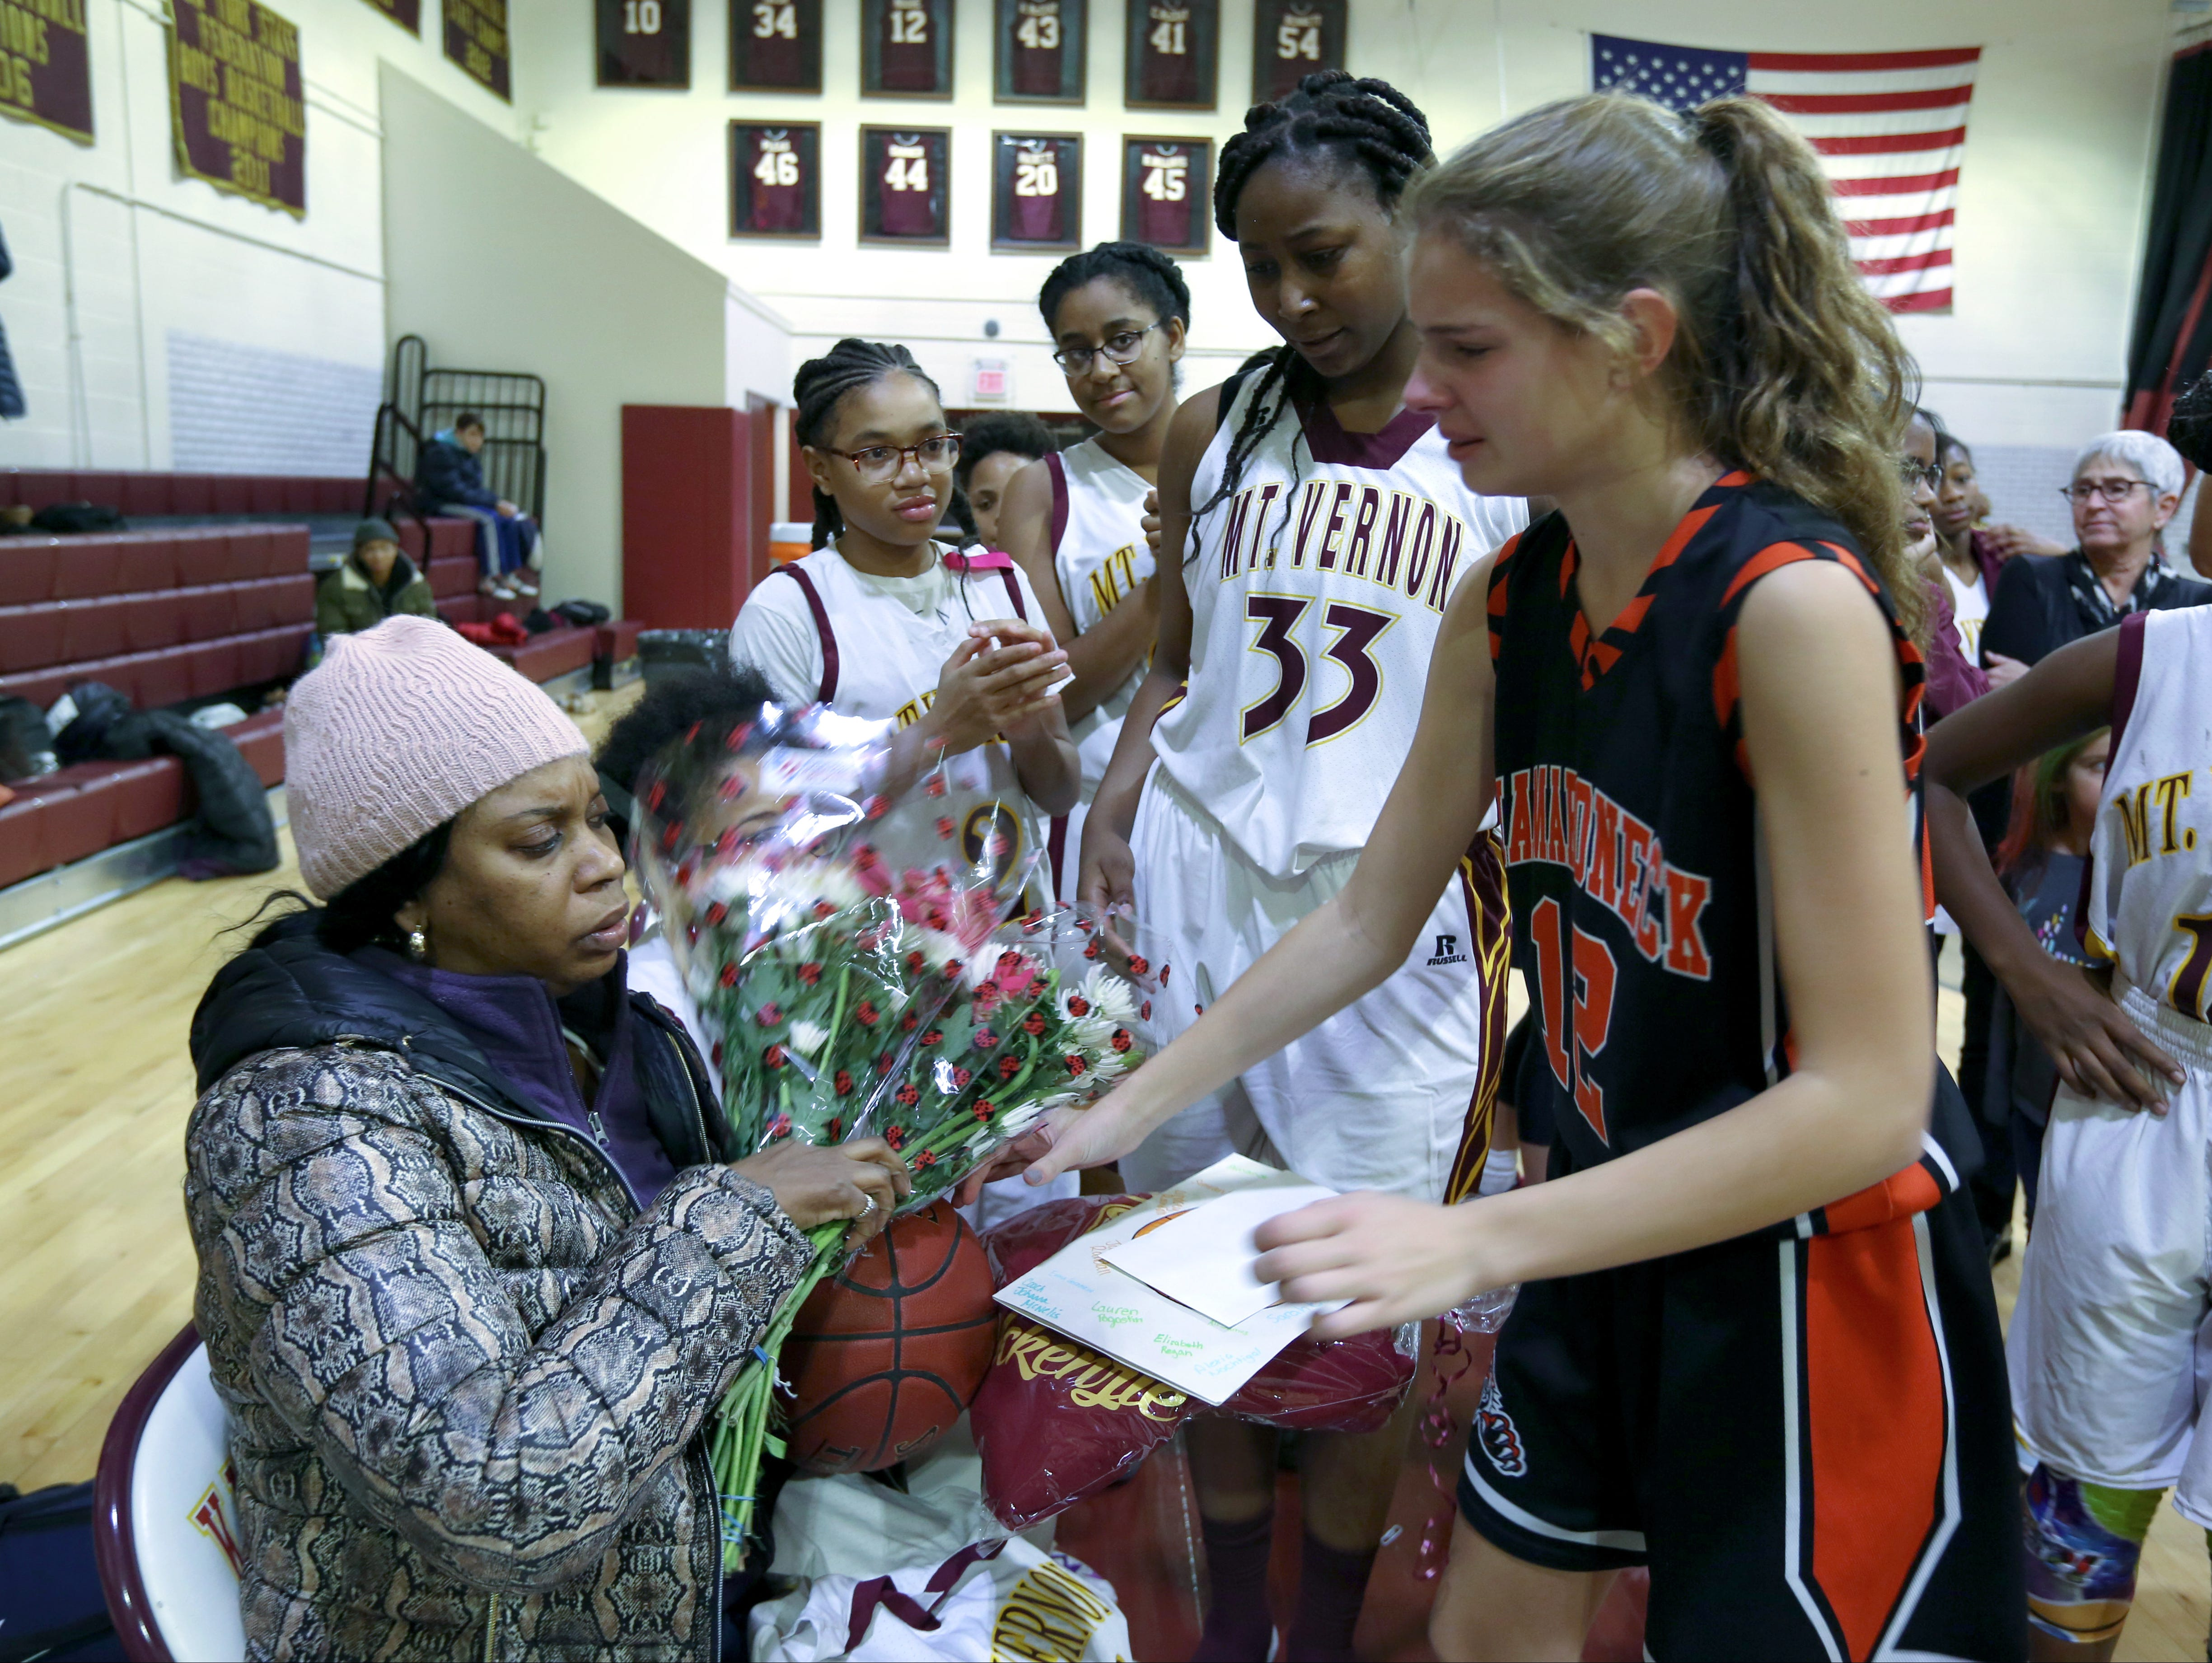 Nadine McKenzie receives flowers before the Mamaroneck at Mount Vernon junior varsity basketball game at Mount Vernon Jan. 6, 2017. Her daughter, Shamoya McKenzie, 13, a member of the Mount Vernon team, was killed by a stray bullet on New Year's Eve.